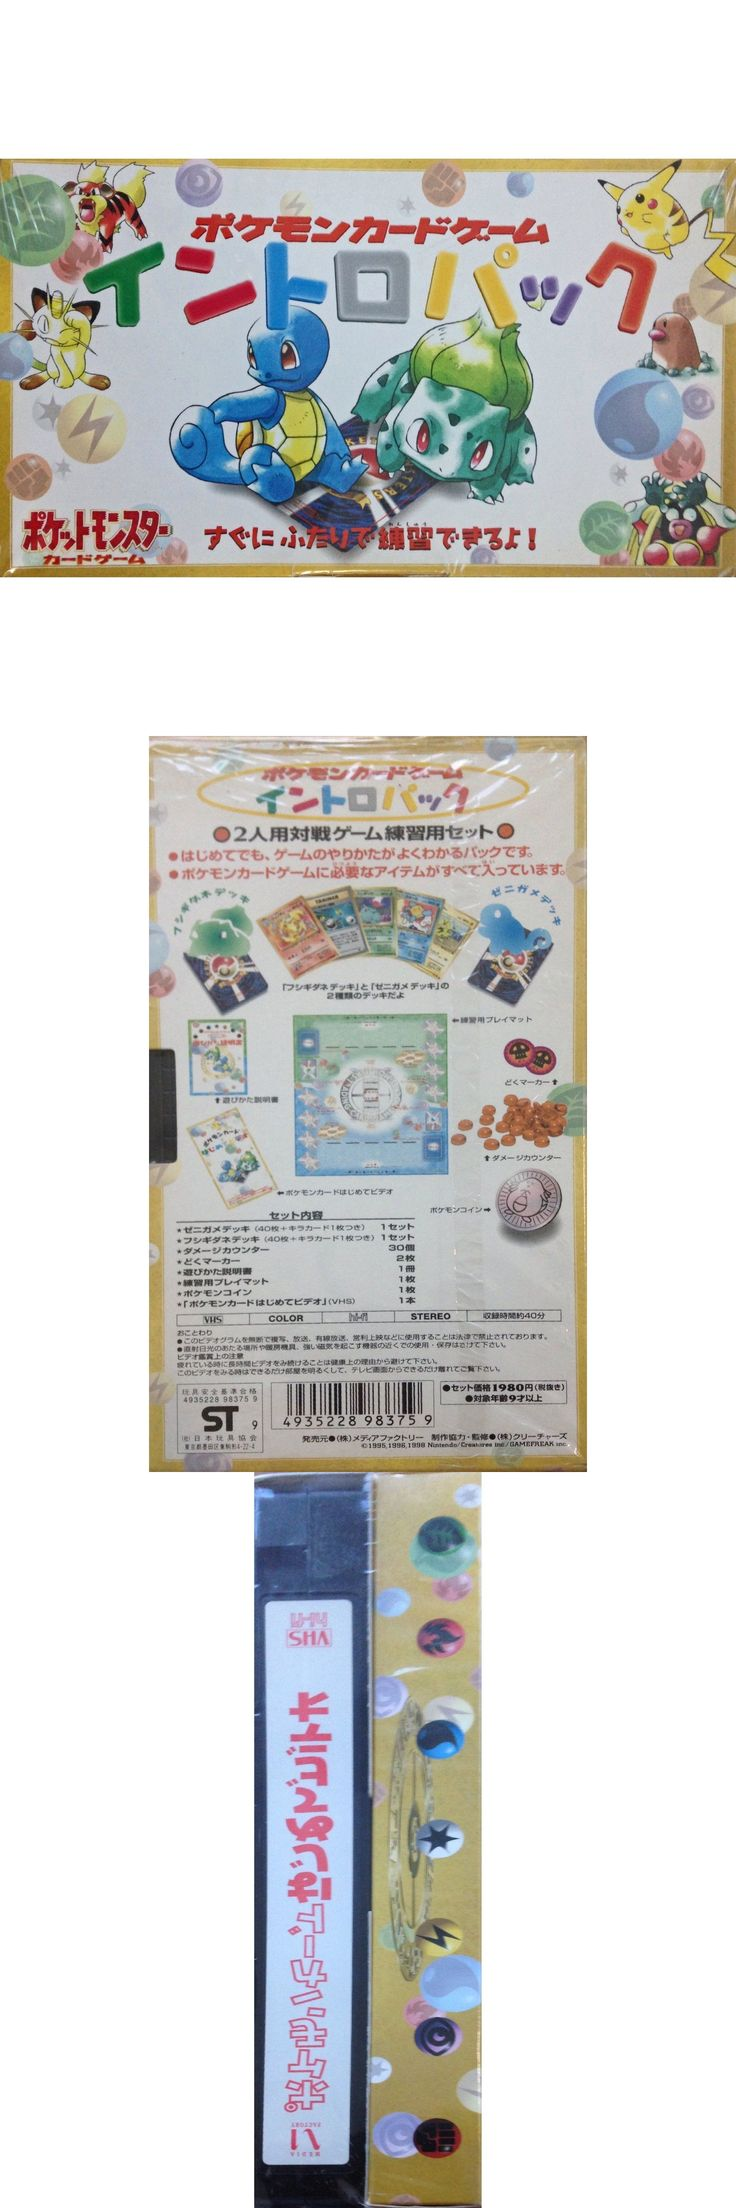 Pok mon Mixed Card Lots 104049: New Pocket Monsters (Pokemon) Video Starter Promo Set - Bulbasaur And Squirtle -> BUY IT NOW ONLY: $99.99 on eBay!